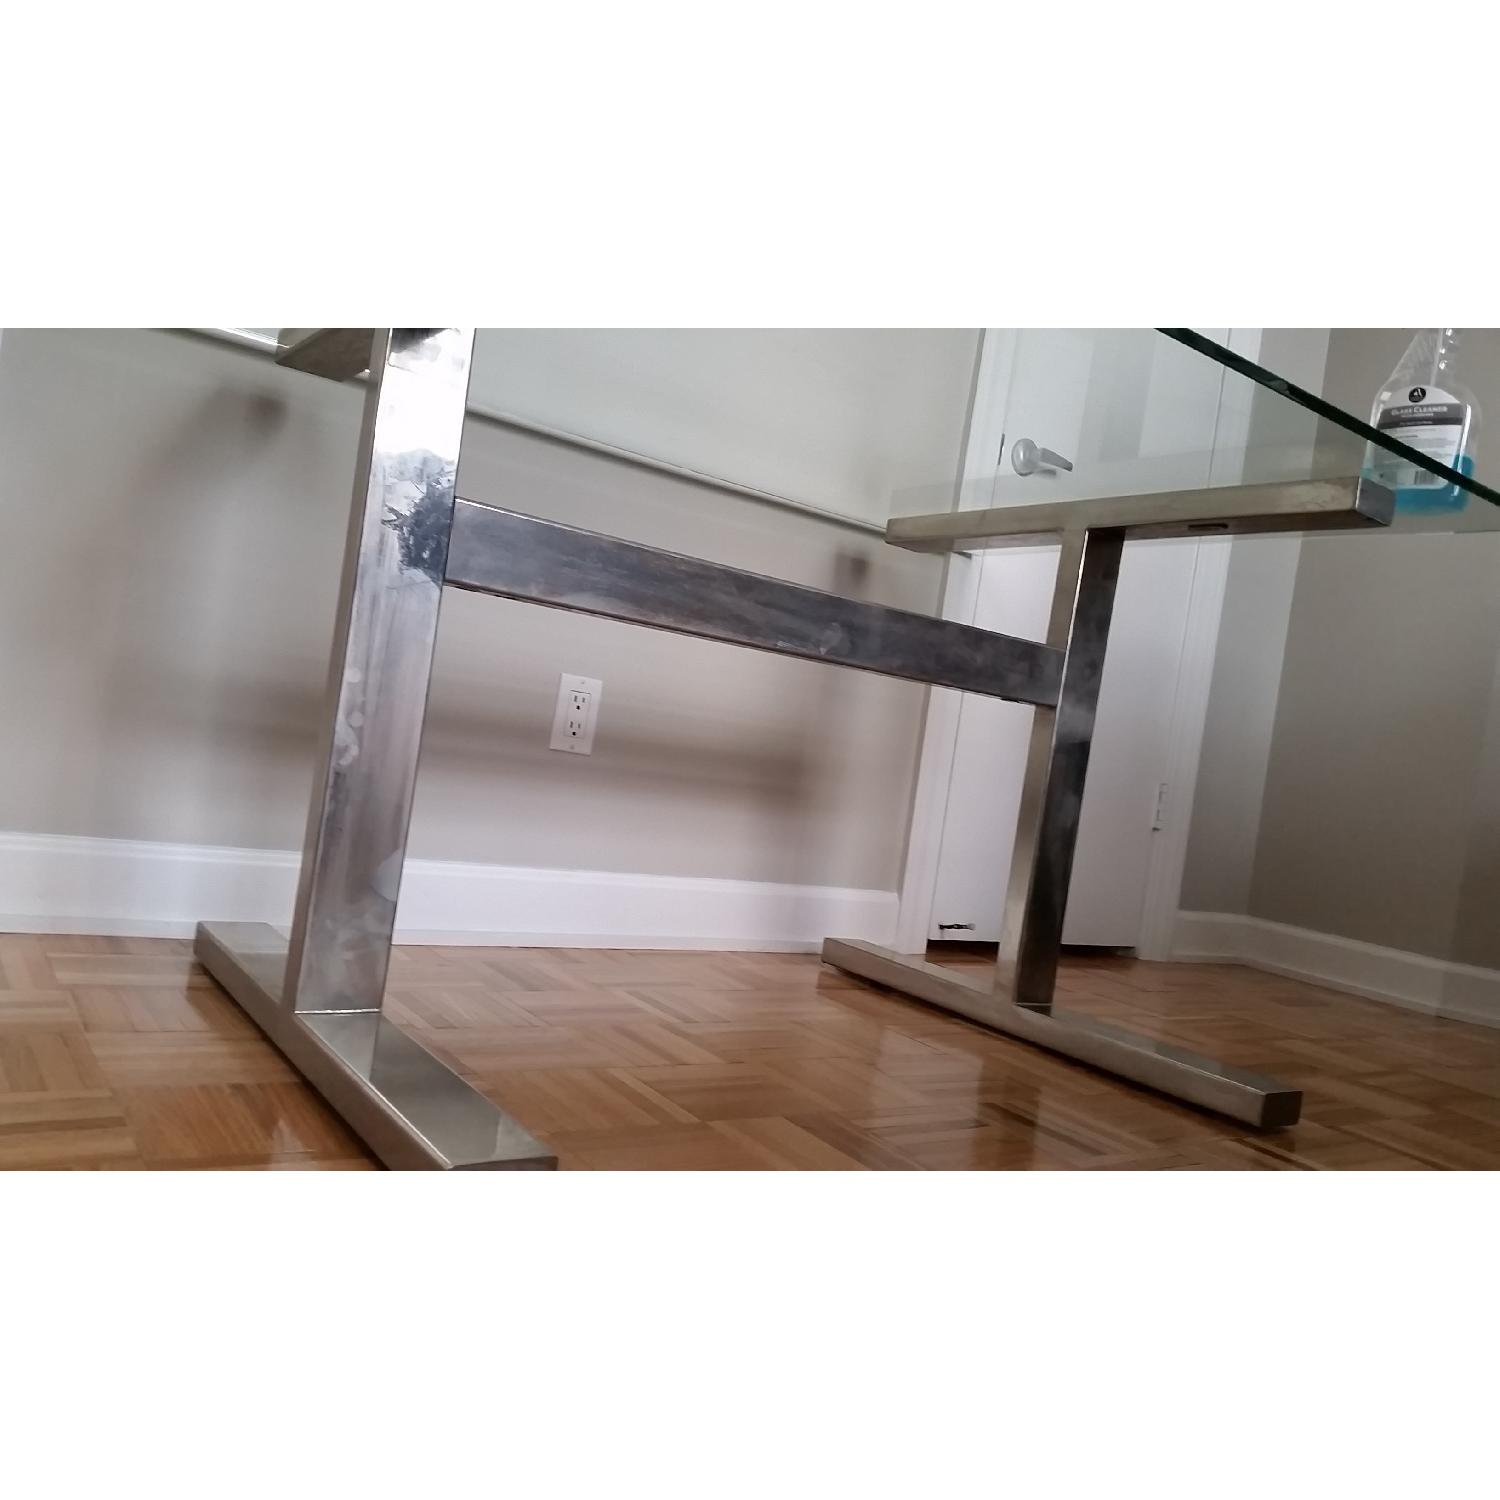 Williams-Sonoma Mercer Glass Table with Metal Frame - image-3